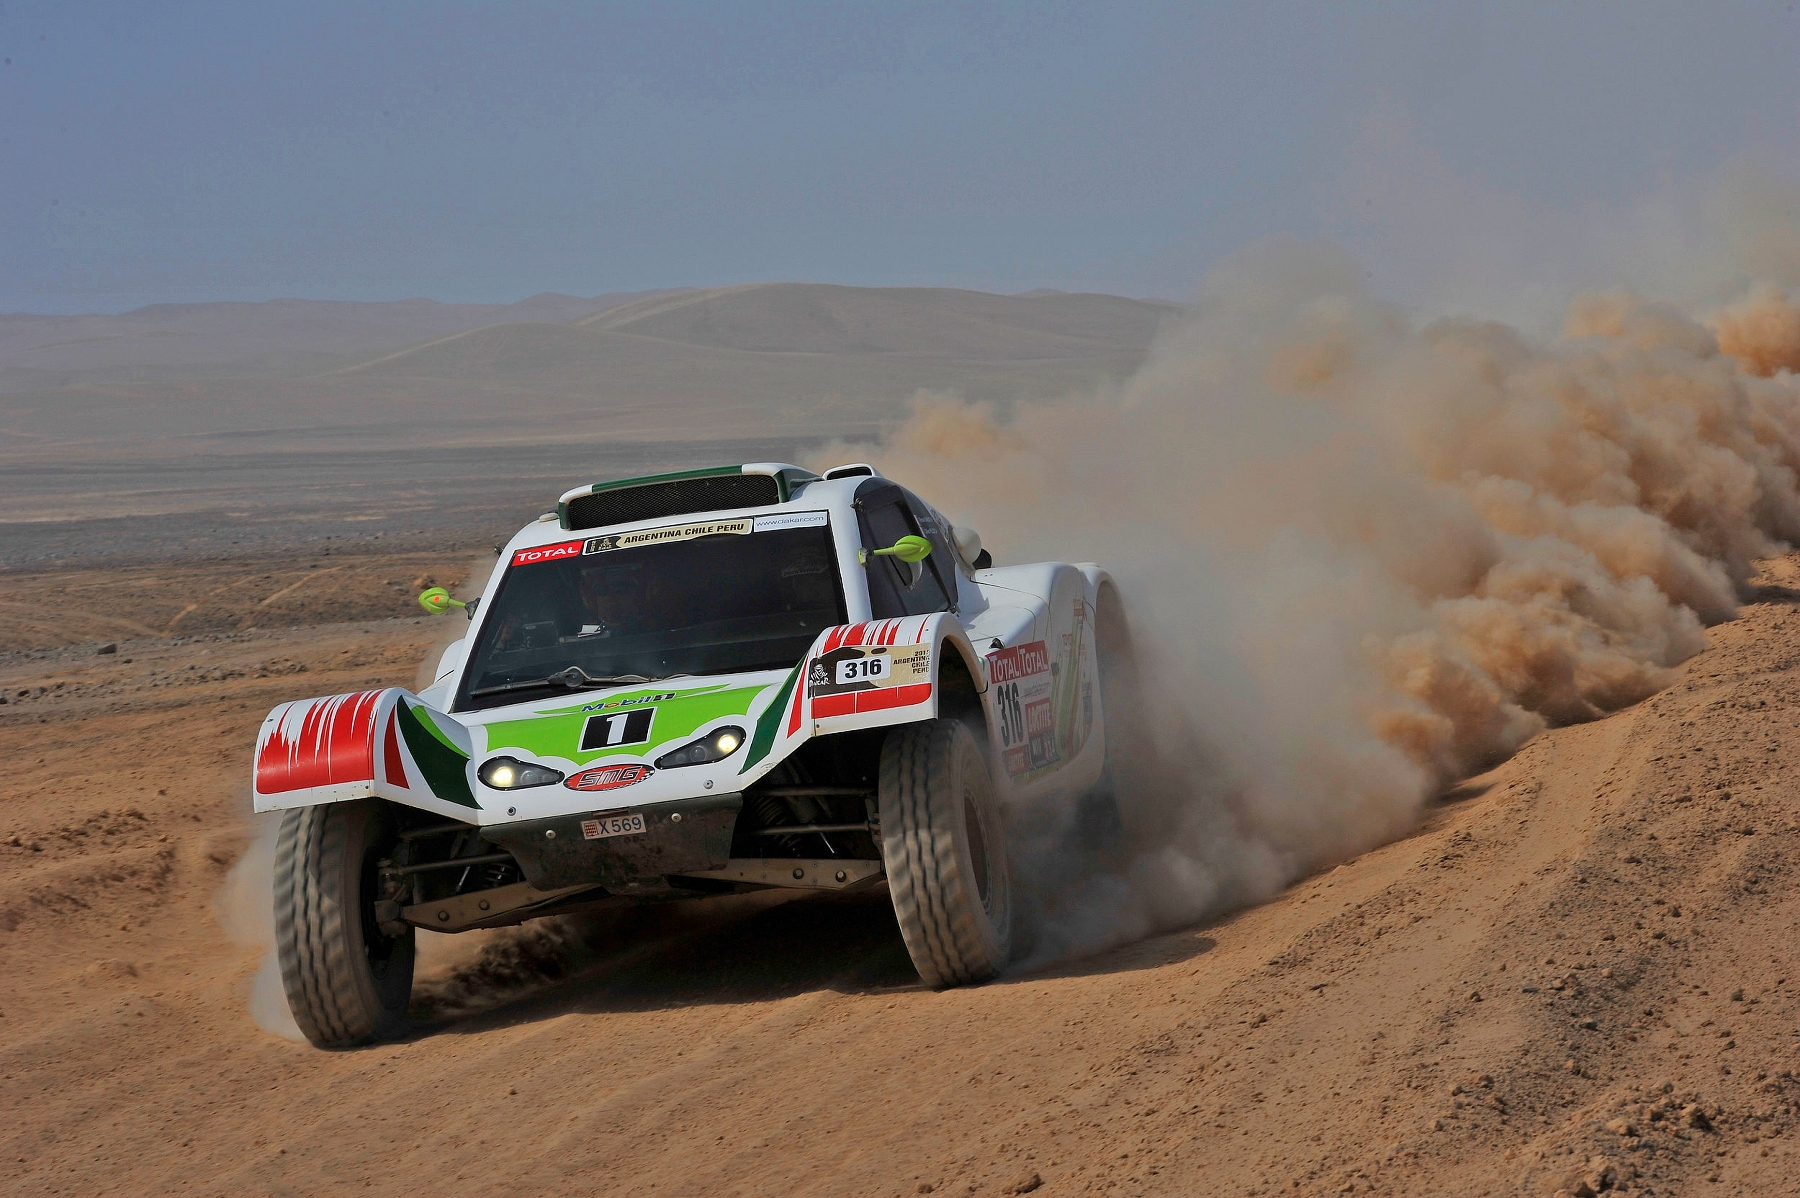 MOTORSPORT - DAKAR ARGENTINA CHILE PERU 2012 - STAGE 9 - ANTOFAGASTA (CHI) TO IQUIQUE (CHI) - 10/01/2012 - PHOTO: DPPI